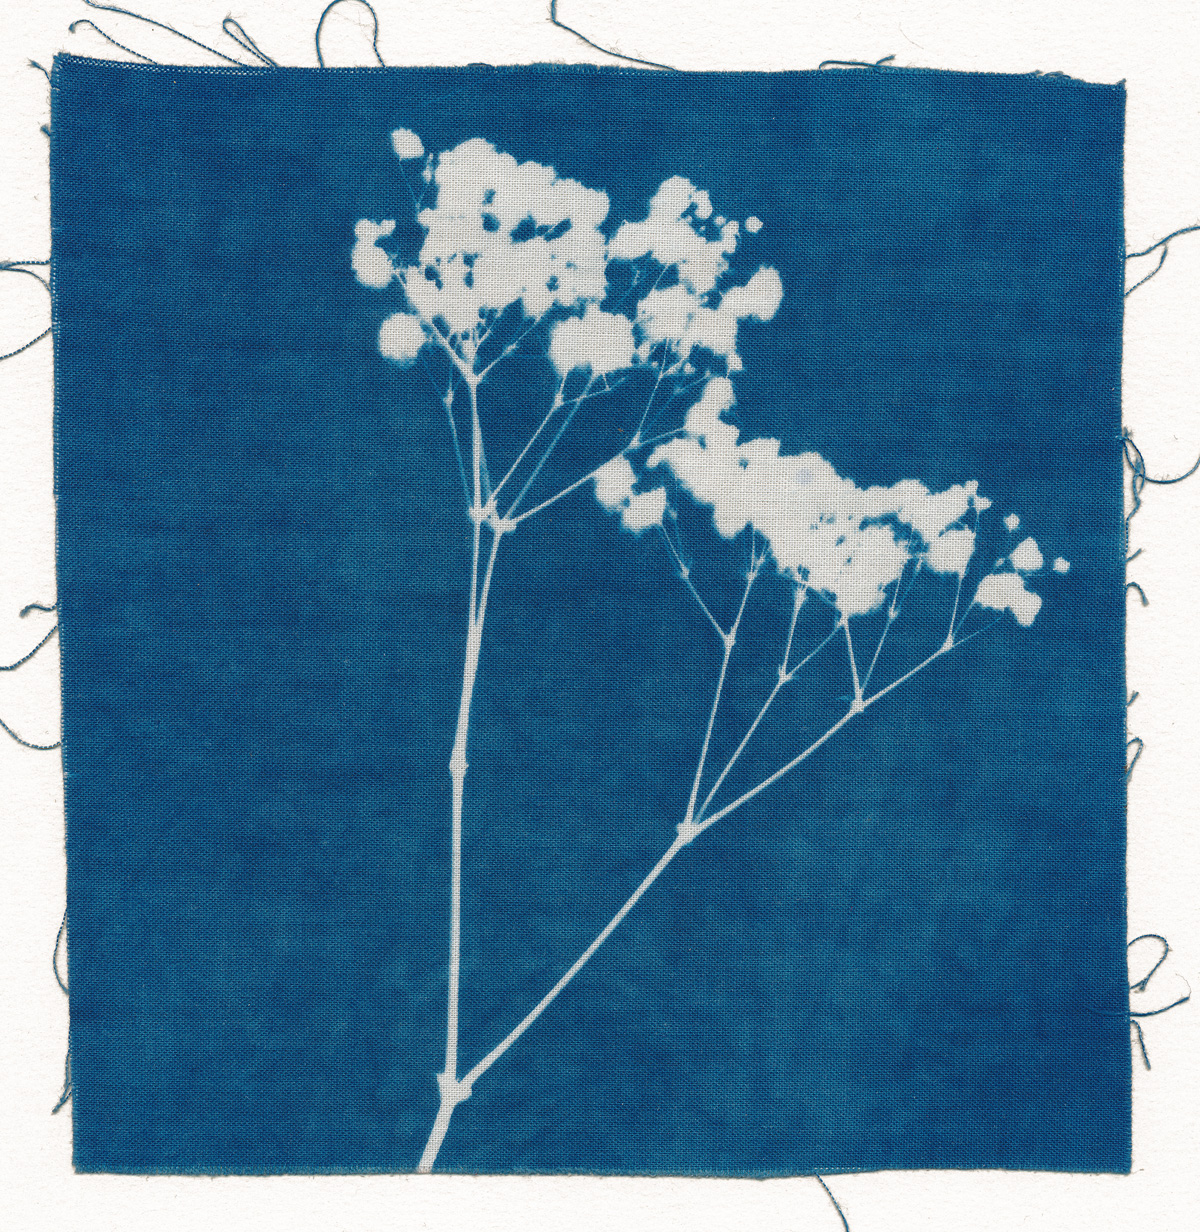 Flora, cyanotype on cotton fabric, Mike Tedder